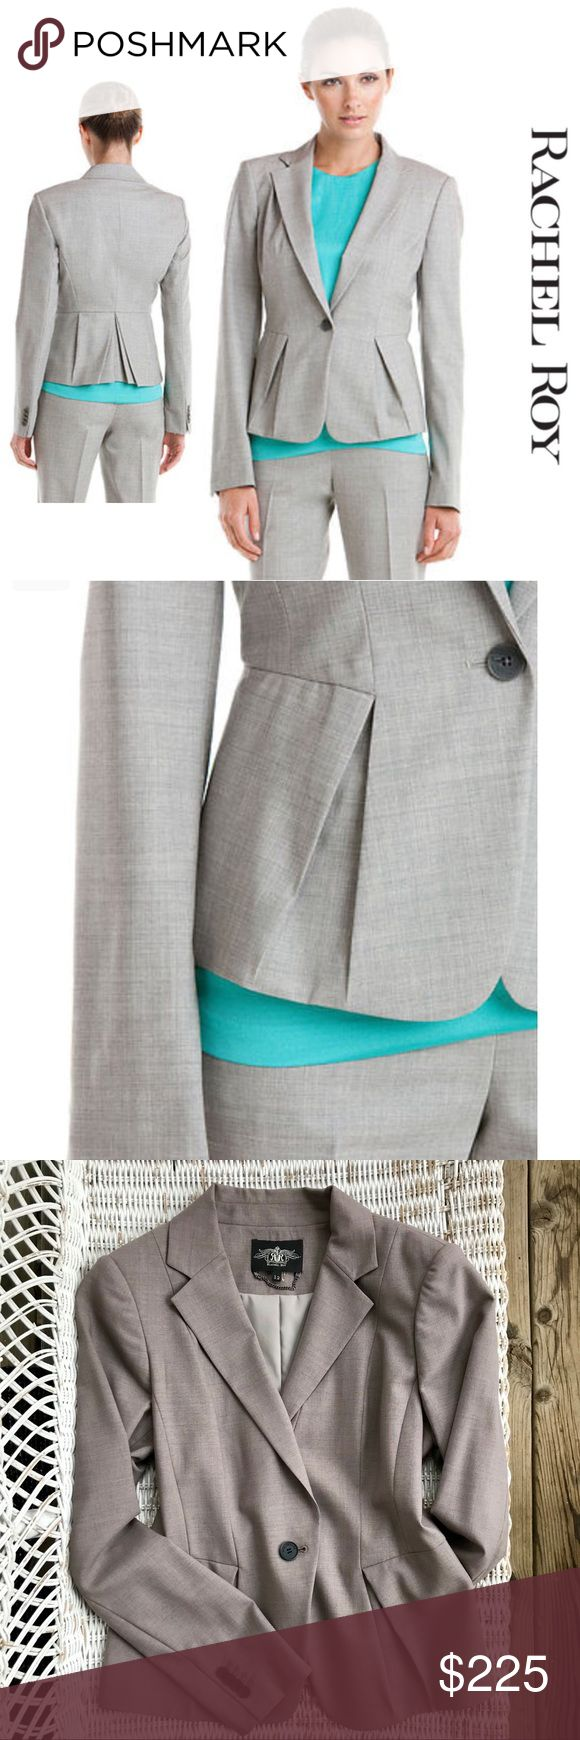 NWOT {Rachel Roy} Pleated Peplum Luxury Blazer ▪️Sharp, clean lines & an ultra-flattering silhouette from luxury designer Rachel Roy in classic gray ▪️High-end materials + superlative craftsmanship ▪️Designer's name printed on buttons ▪️Fully lined — so supersoft + silky against your skin! ▪️A must-have career blazer! ▪️$495 New purchased at Nieman Marcus ▪️Lightly padded shoulders  ▪️Measurements shown in photos  🔺🔻BRAND NEW — NEVER WORN! Rachel Roy Jackets & Coats Blazers